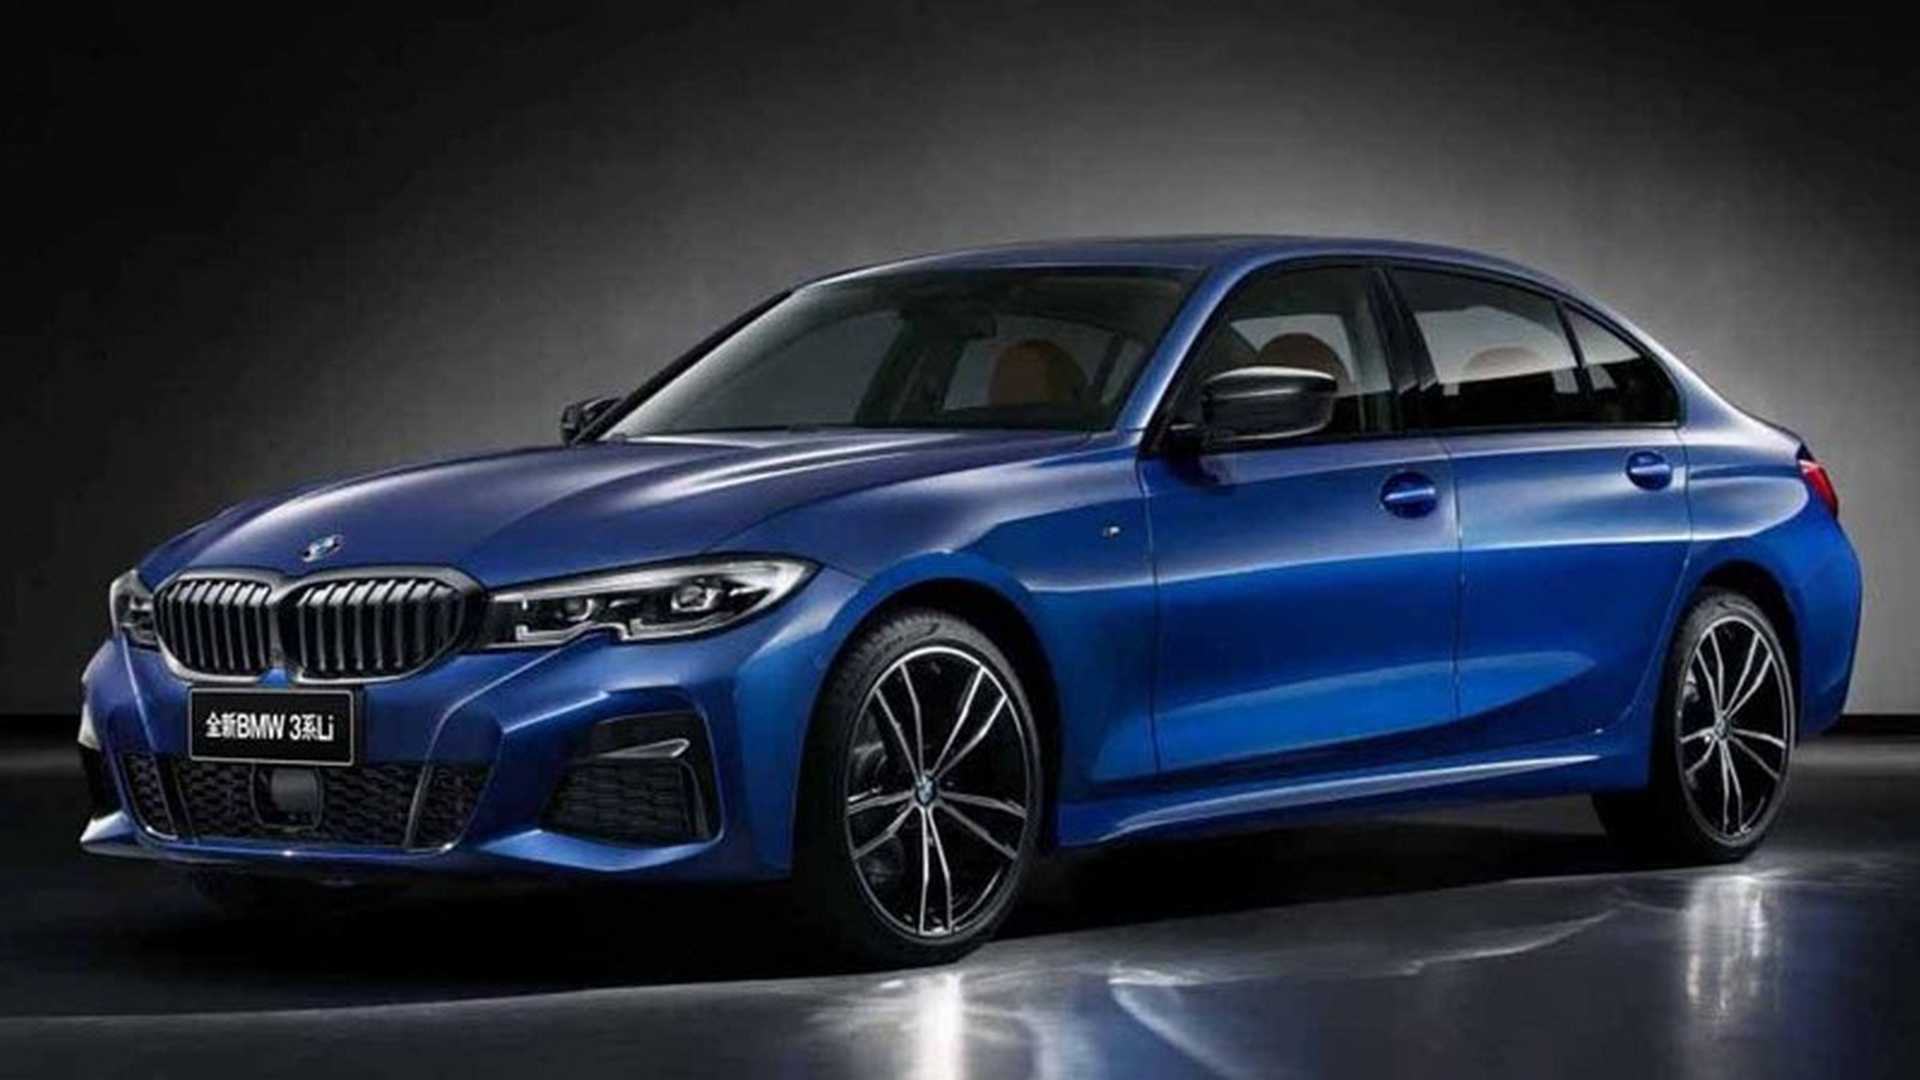 2019 Bmw 3 Series Long Wheelbase Quietly Revealed In China